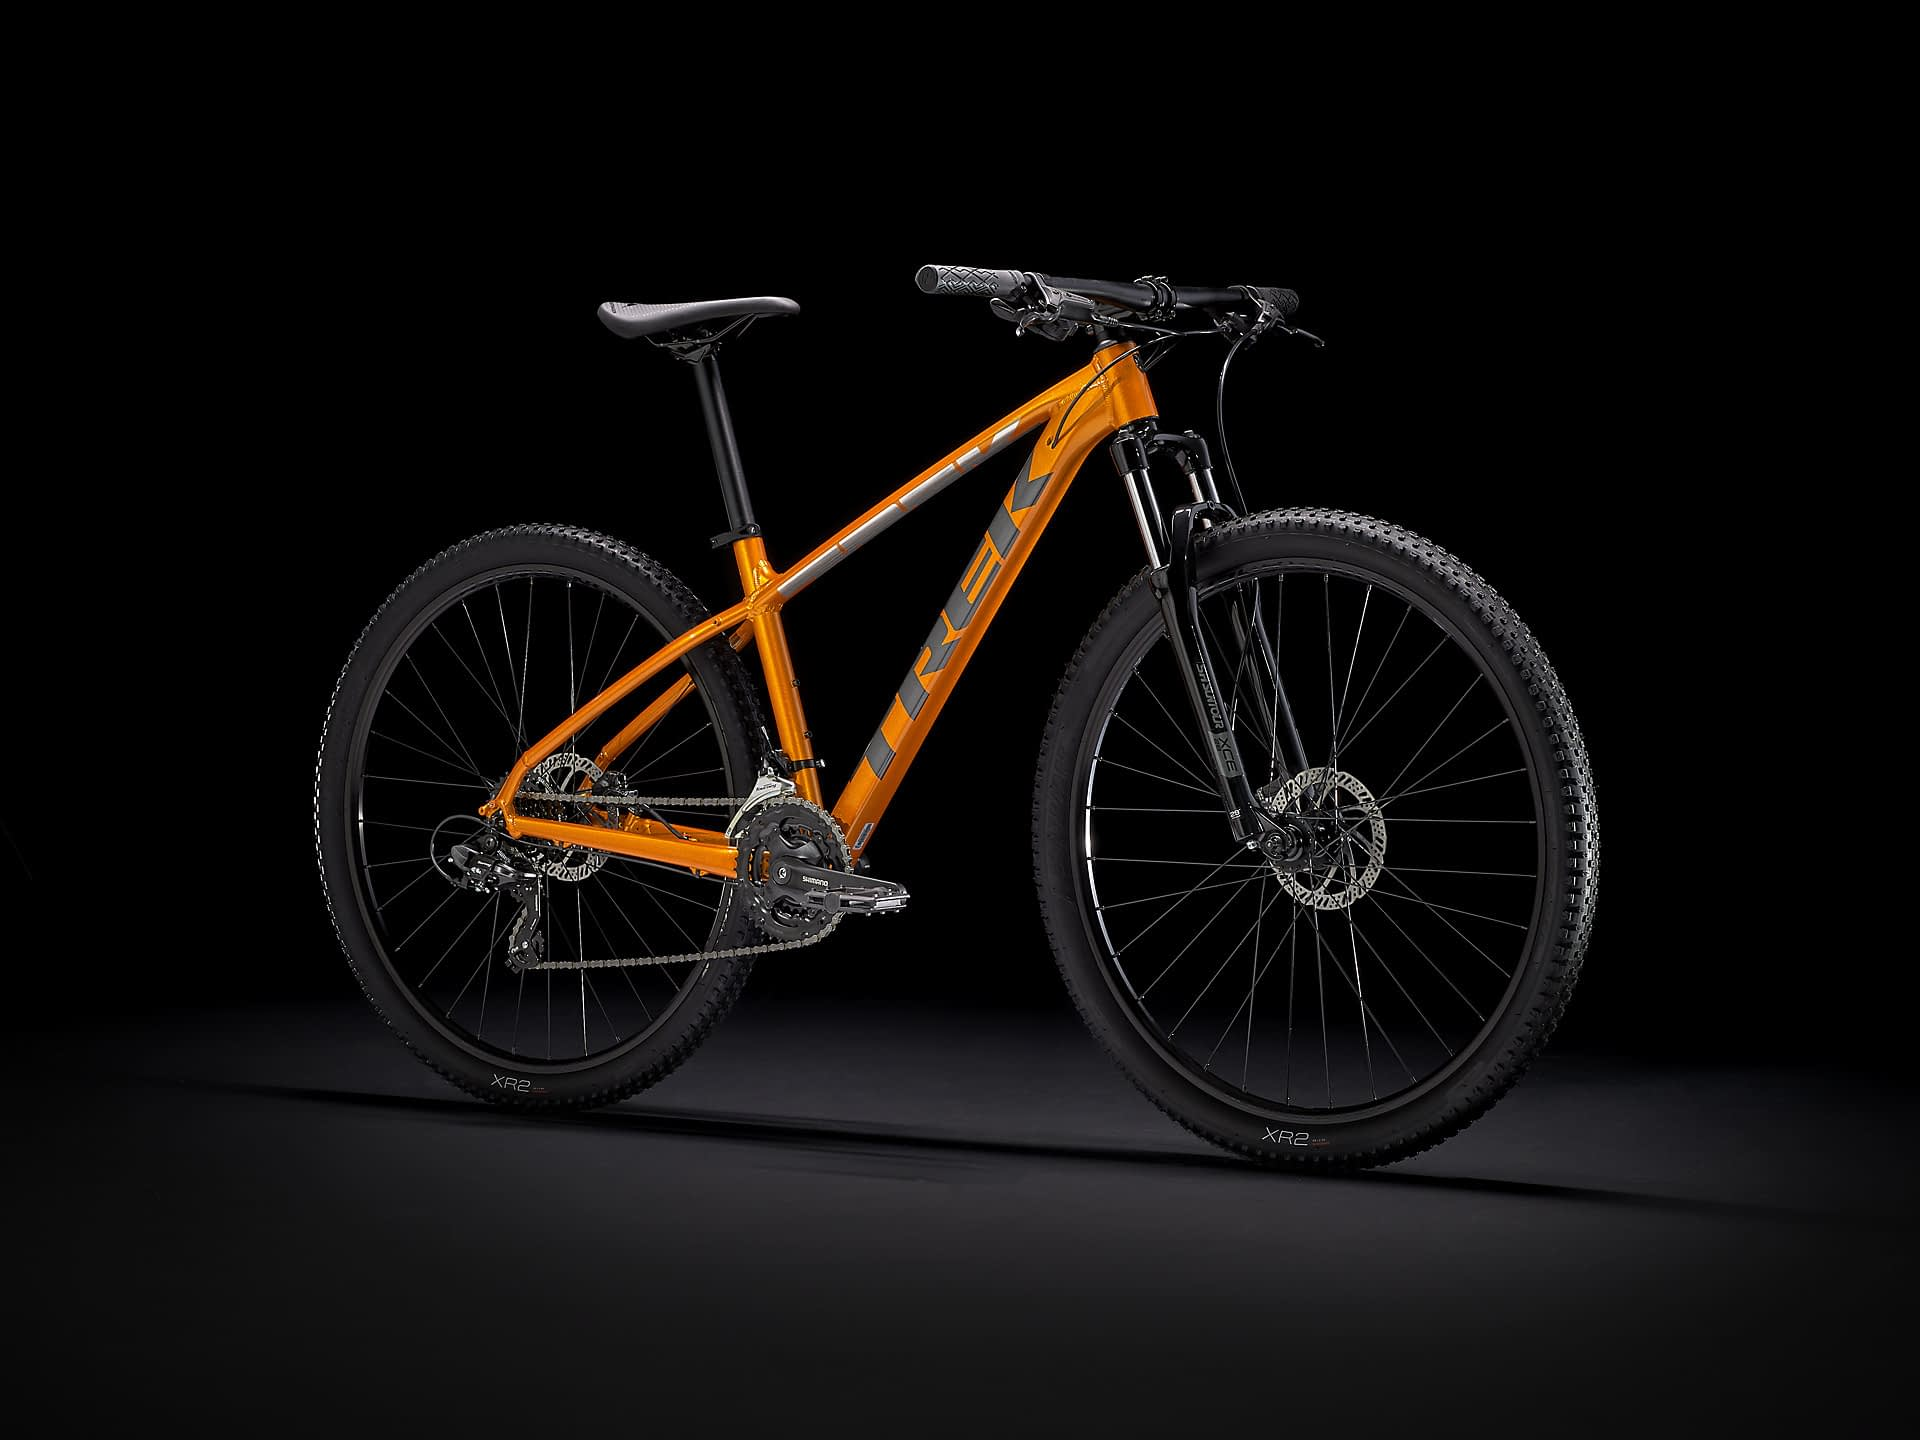 a mustard colored mountain bike with black tires on a black background